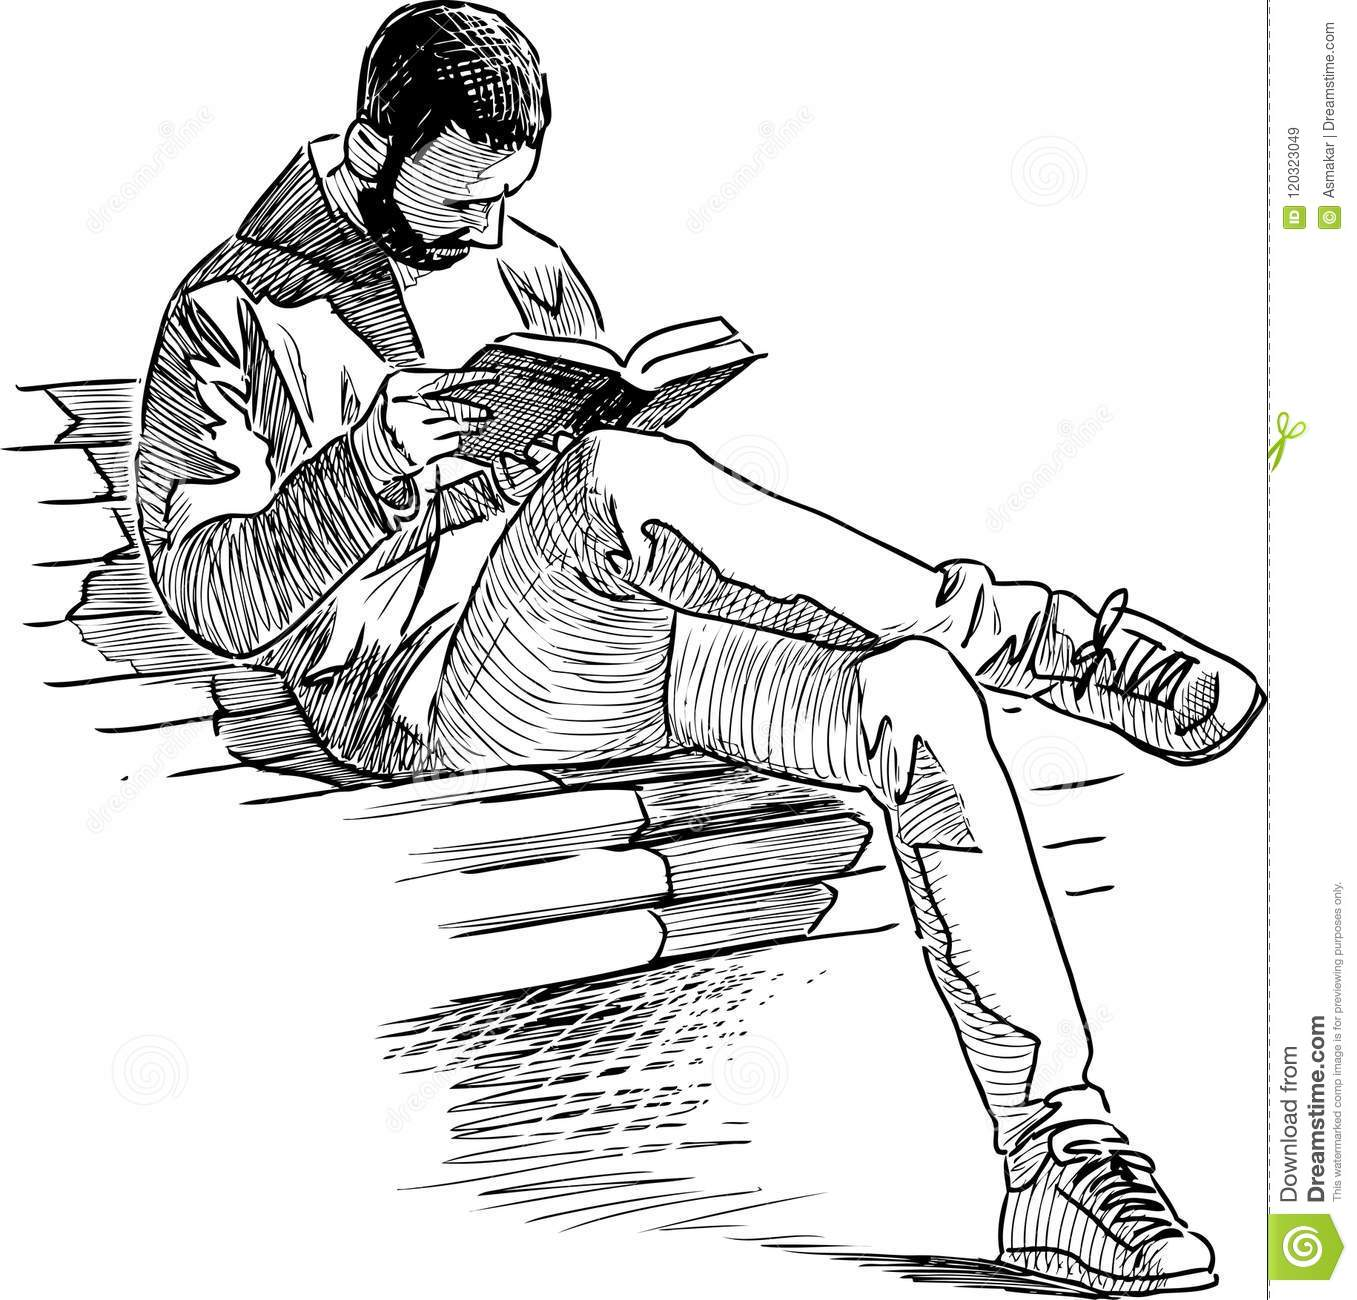 A townsman reads a book in a city park